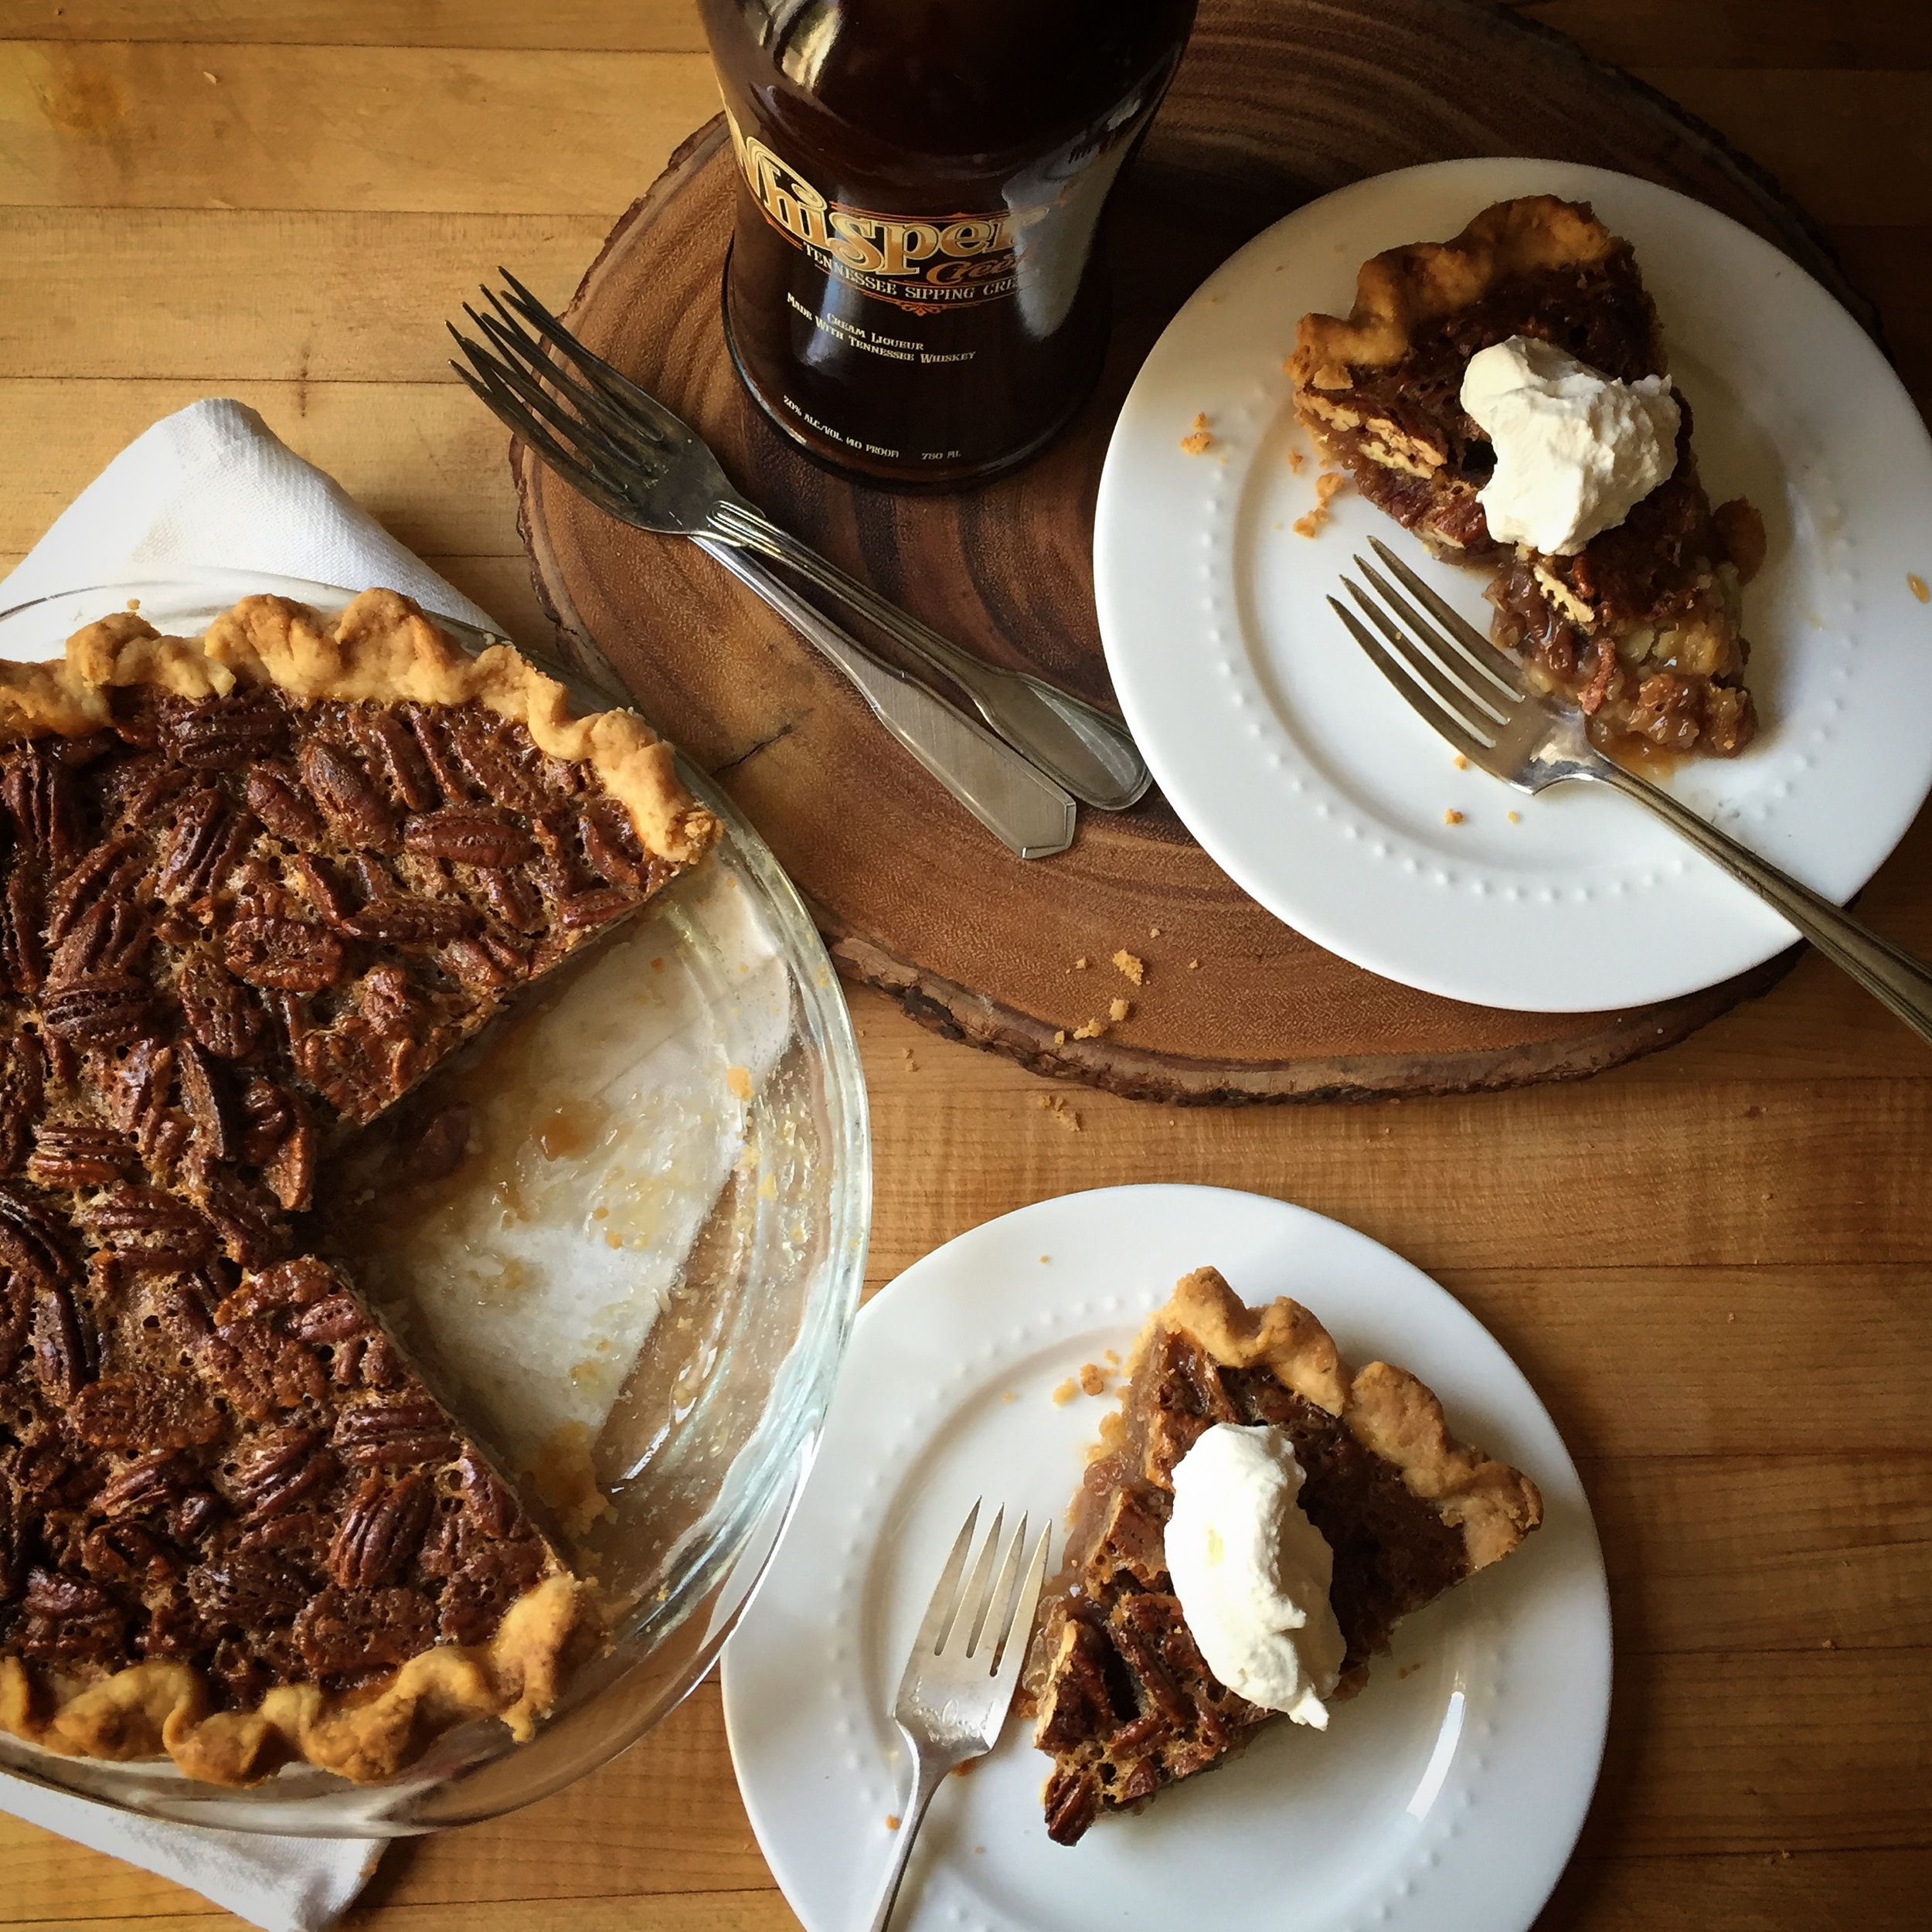 Pecan Pie made with Whisper Creek Tennessee Sipping Cream